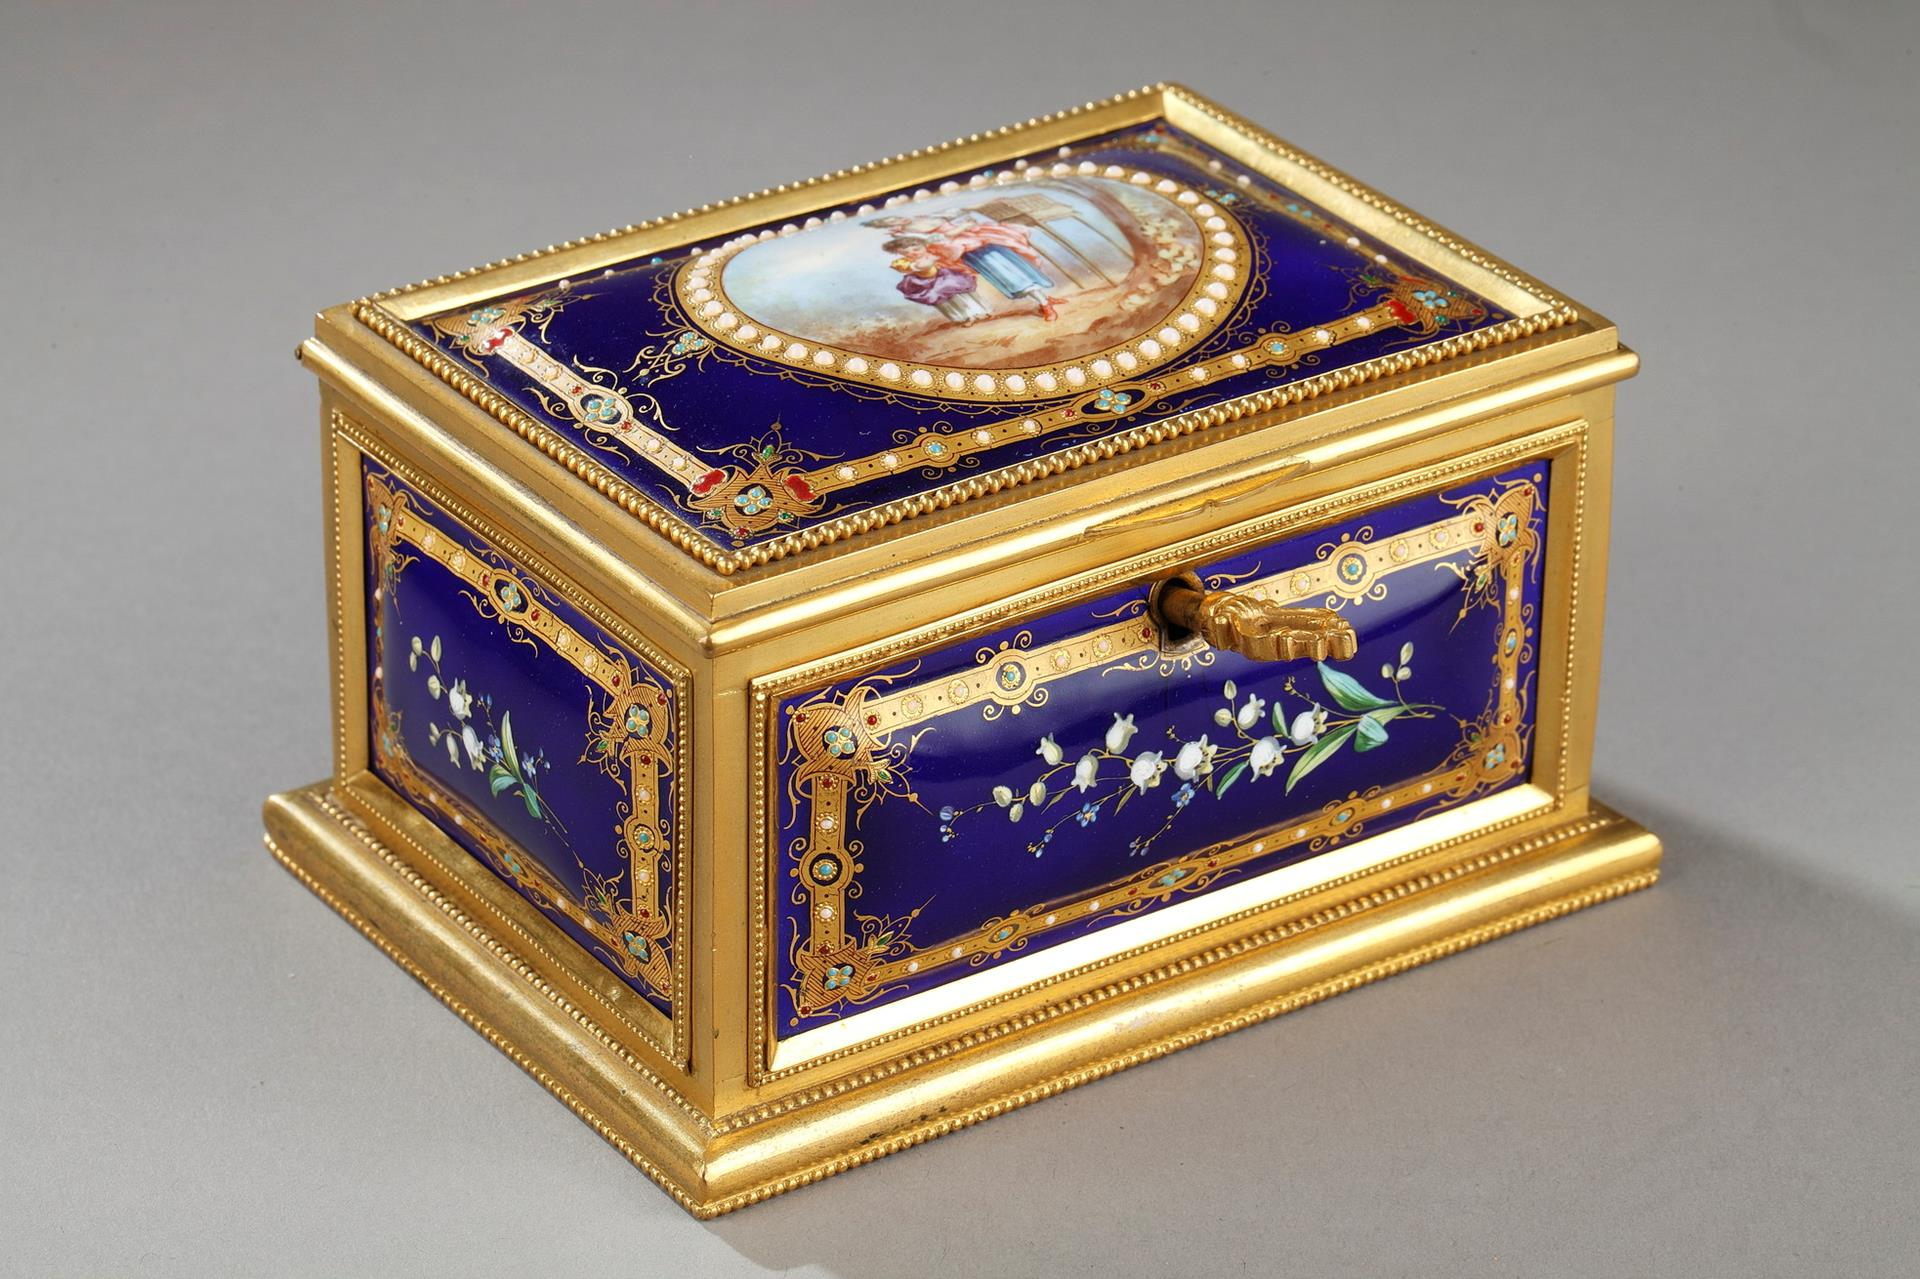 19TH CENTURY CASKET IN  ENAMEL AND GILT BRONZE MOUNTS. Signed Tahan. 19th century.